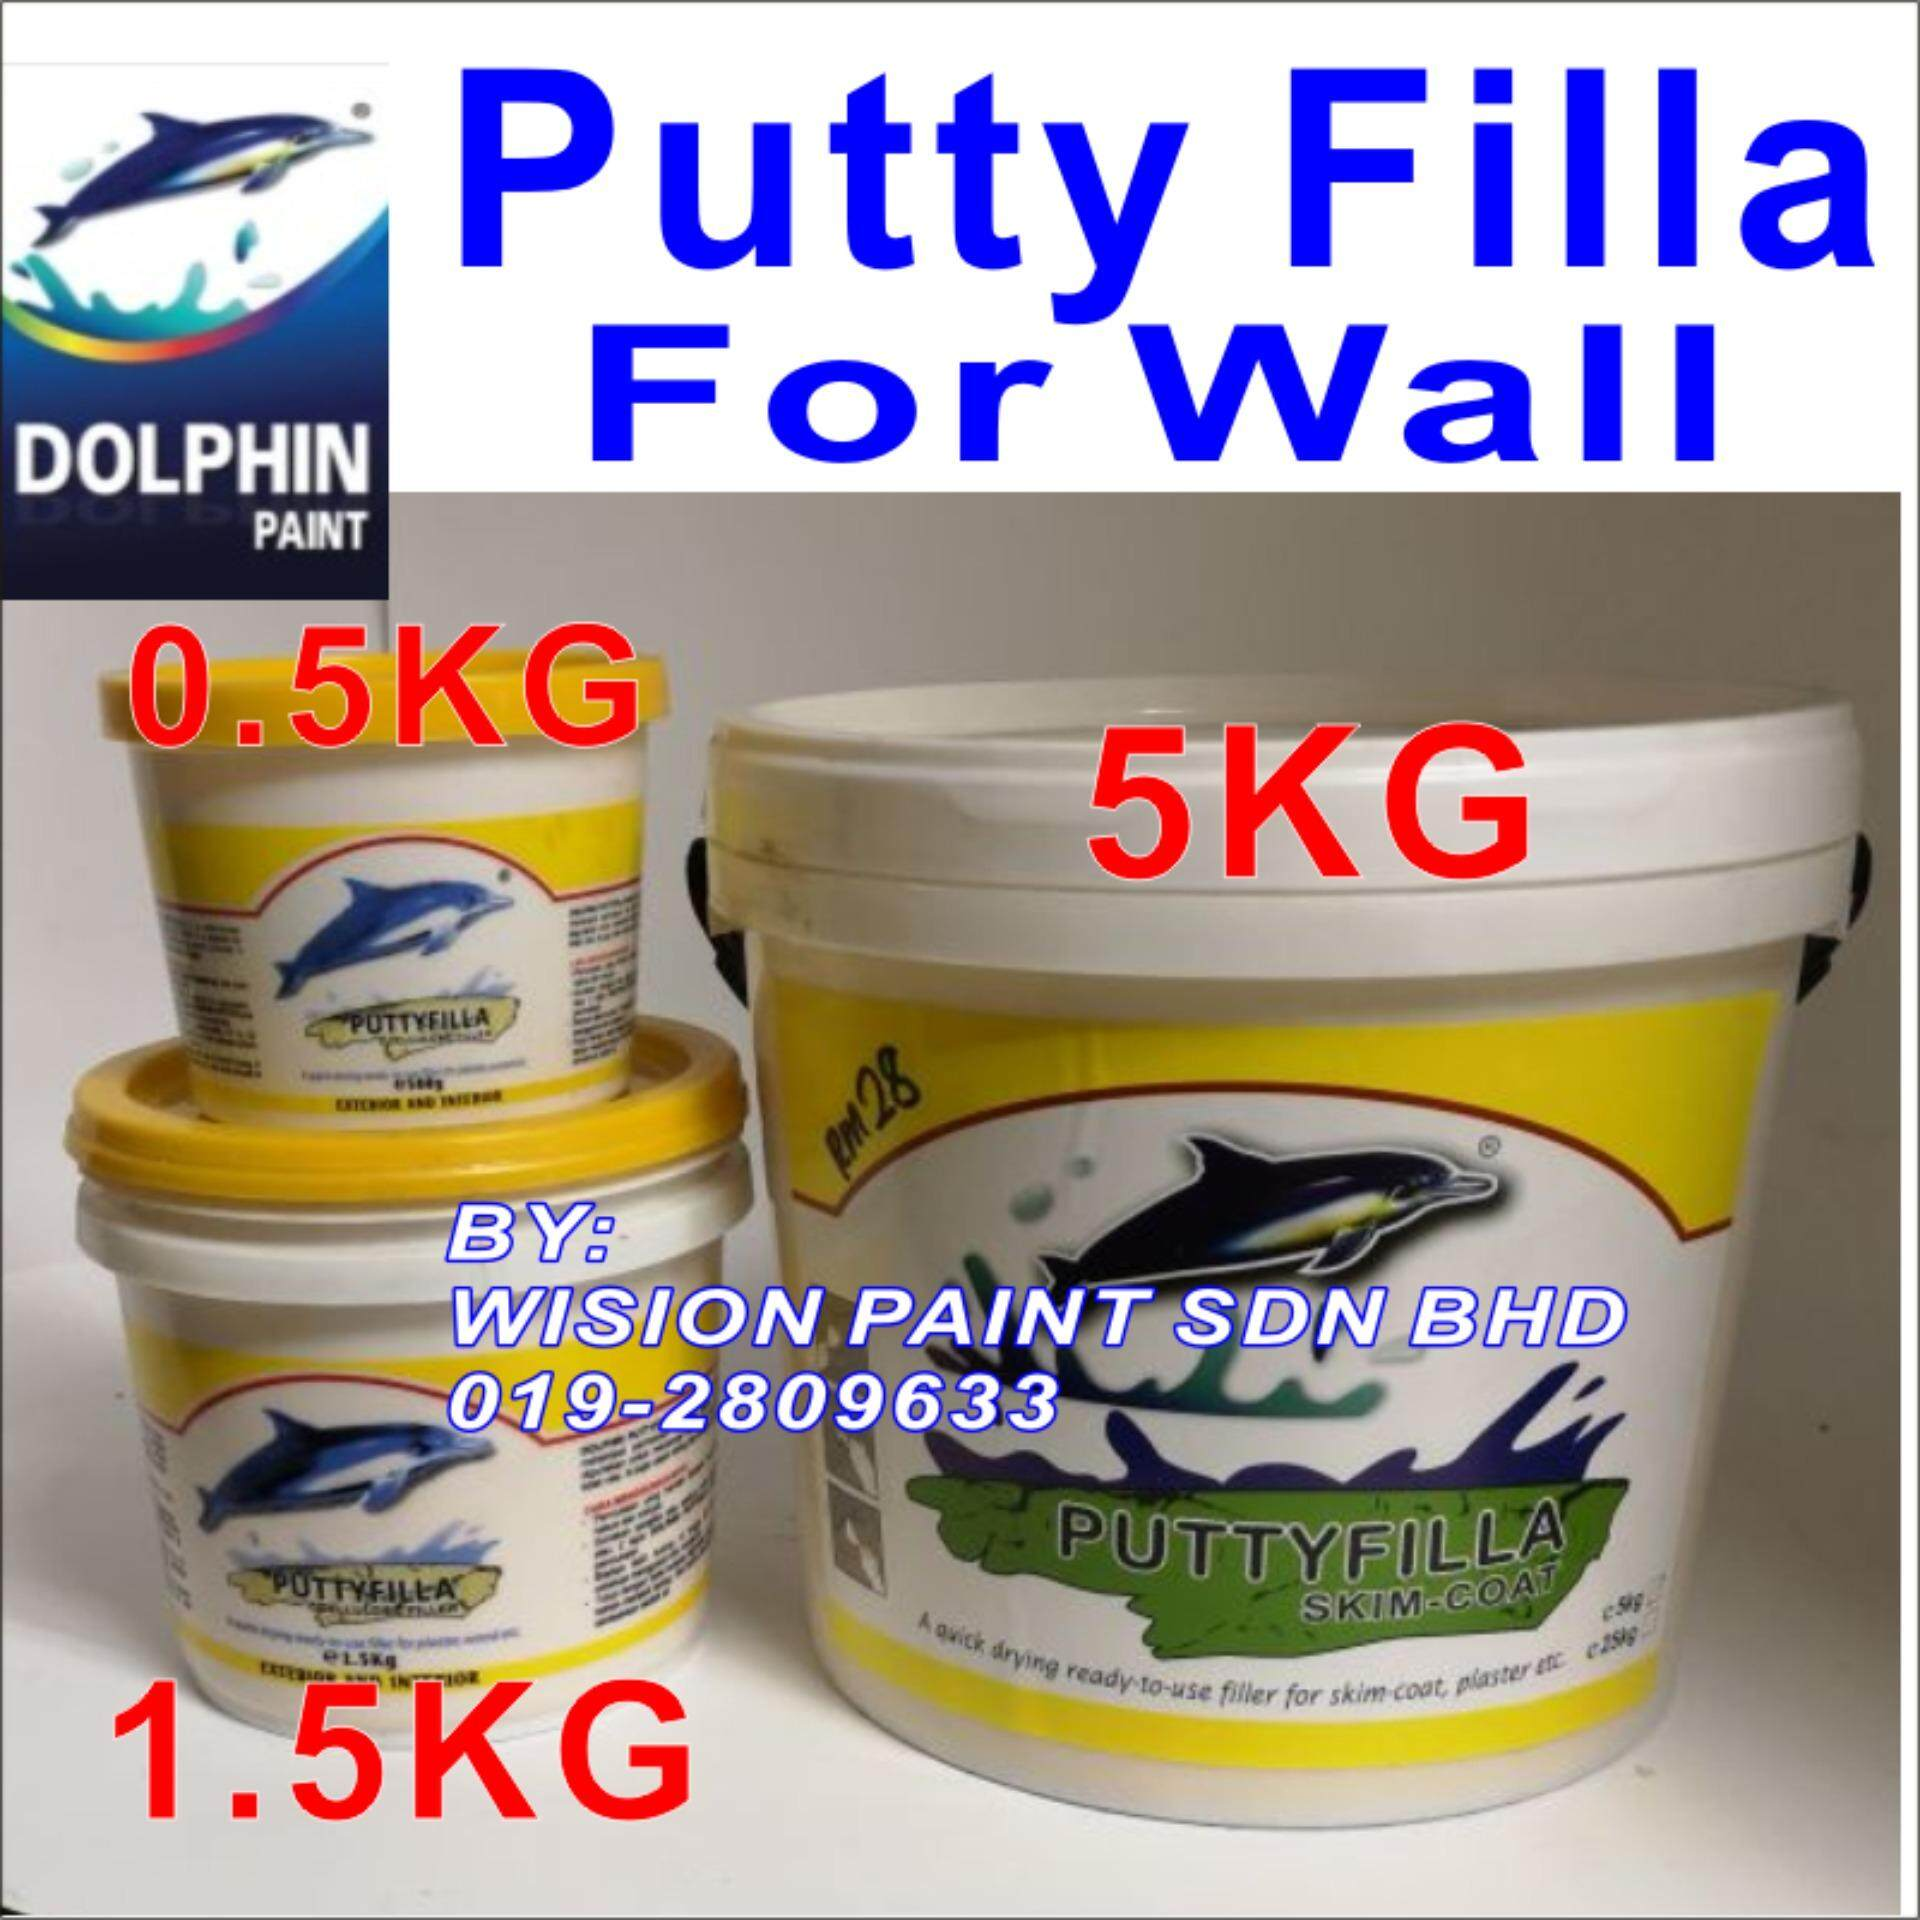 PUTTY FILLA FOR WALLS 0.5KG DOLPHIN PAINT